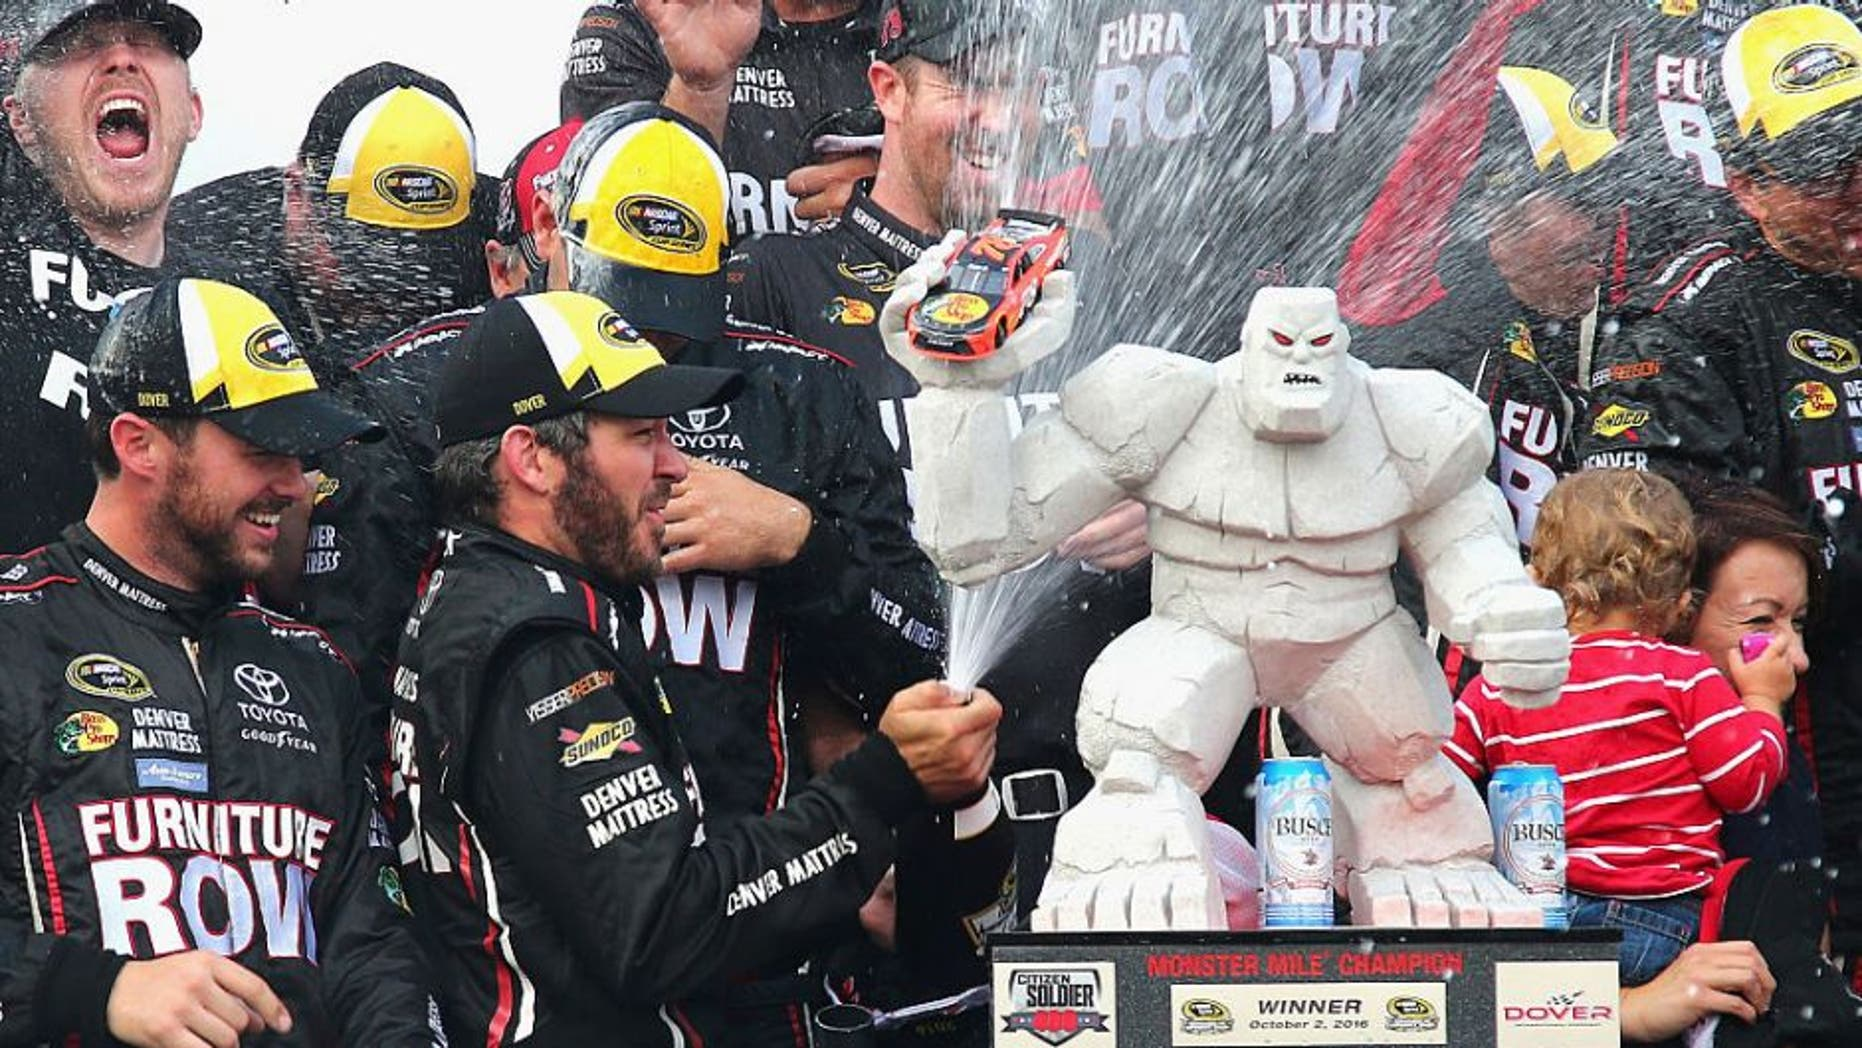 DOVER, DE - OCTOBER 02: Martin Truex Jr., driver of the #78 Furniture Row/Denver Mattress Toyota, celebrates with the trophy in Victory Lane after winning the NASCAR Sprint Cup Series Citizen Solider 400 at Dover International Speedway on October 2, 2016 in Dover, Delaware. (Photo by Sarah Crabill/NASCAR via Getty Images)